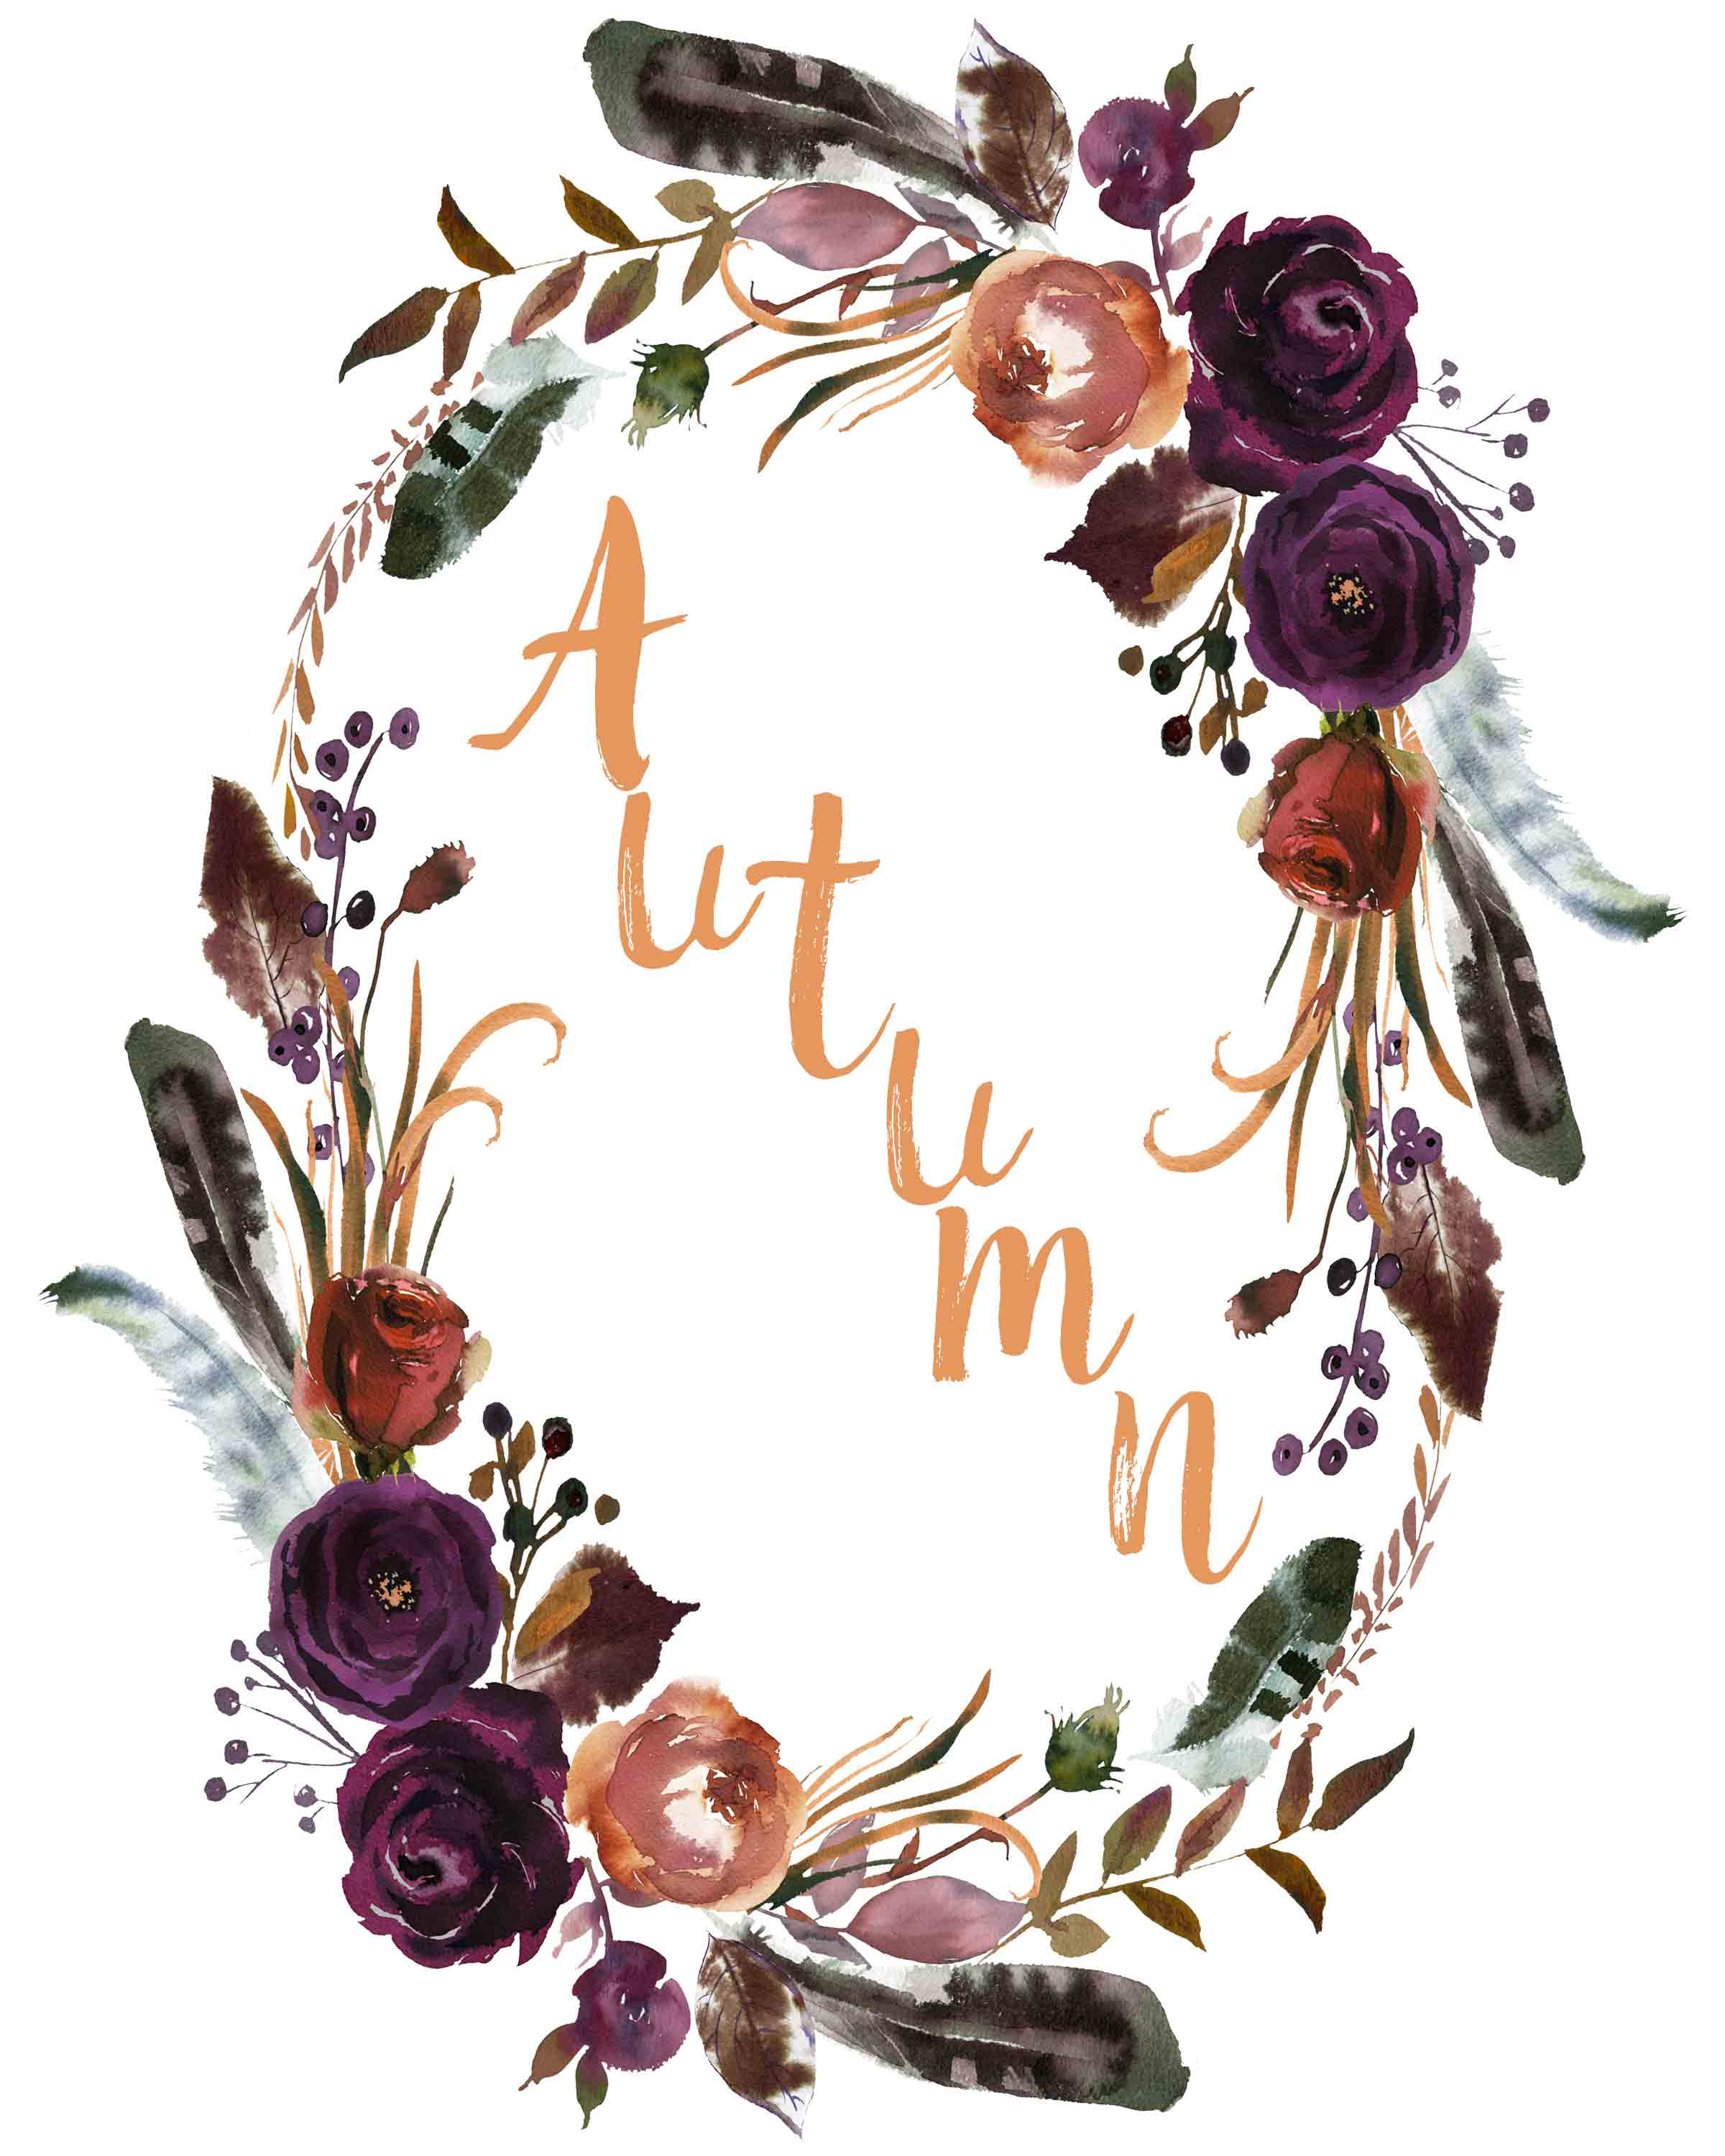 Autumn in wreath free printable. Free Printable Fall Wall Art. 3 free fall wall art printable designs to decorate your home or office. Celebrate autumn! #free #printable #freeprintable #fall #autumn #wallart #fallart #autumnart